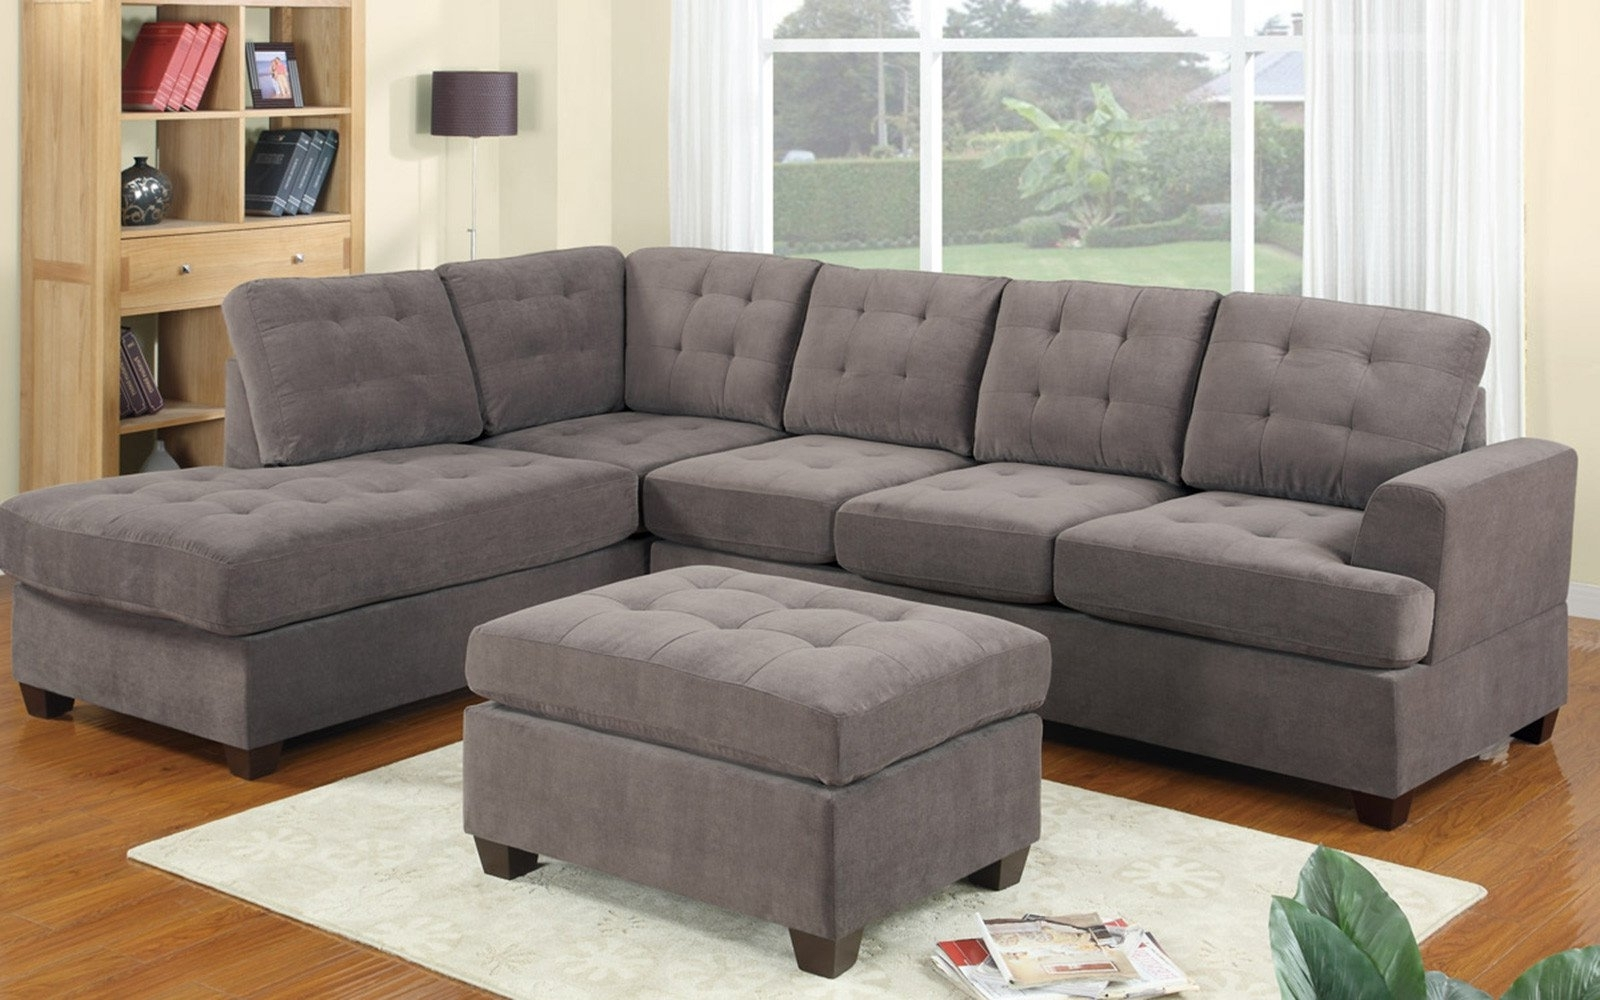 Most Current Ashley Furniture Sectional Sofas — Cabinets, Beds, Sofas And Throughout Affordable Sectional Sofas (View 18 of 20)